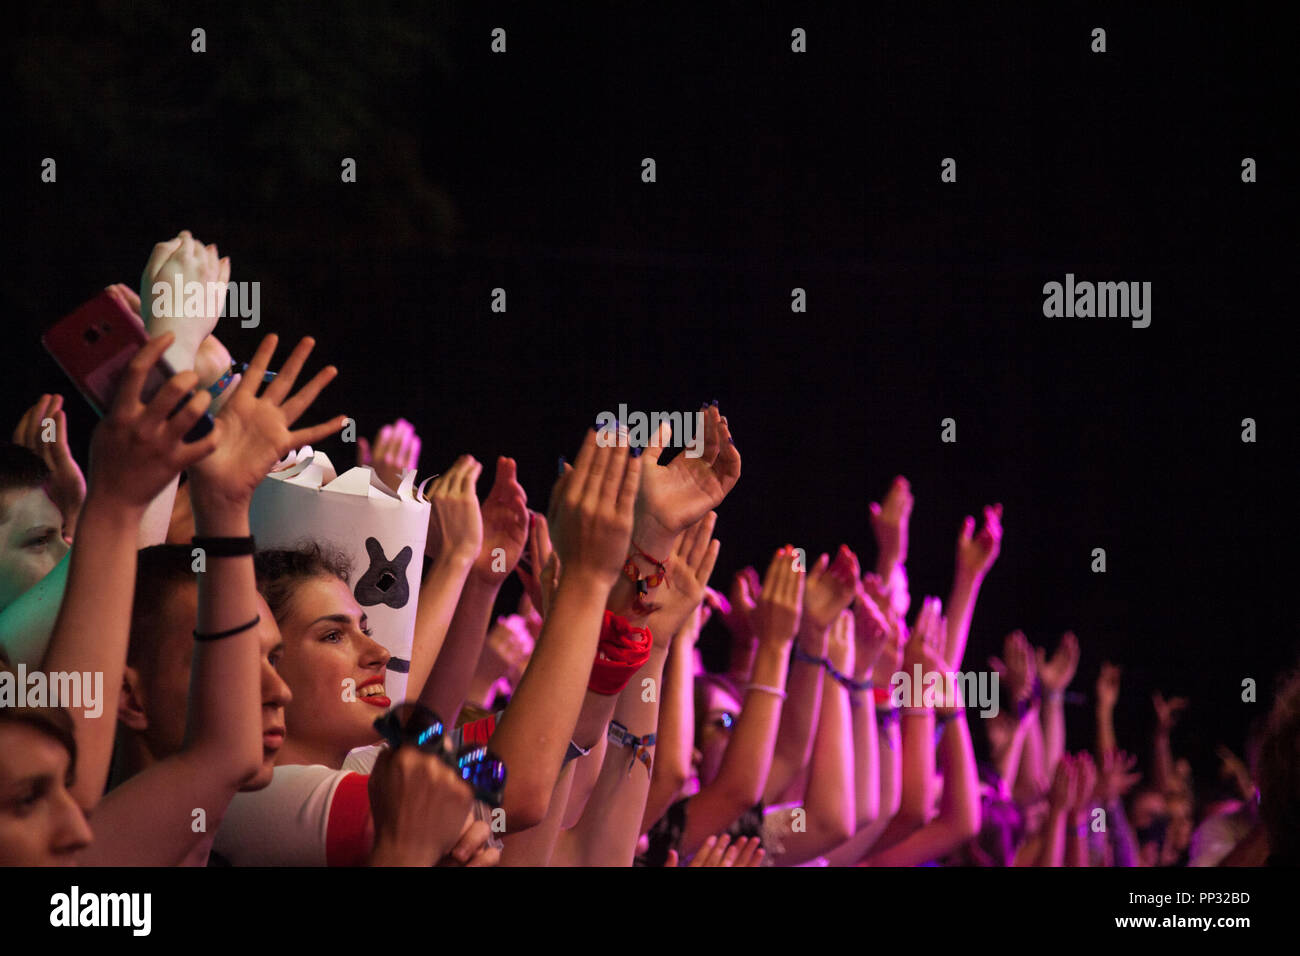 NOVI SAD, SERBIA - JULY 15, 2018: Crowd cheering and raising their hands in the air in front of the main stage of the Exit Festival at night. Exit is  - Stock Image